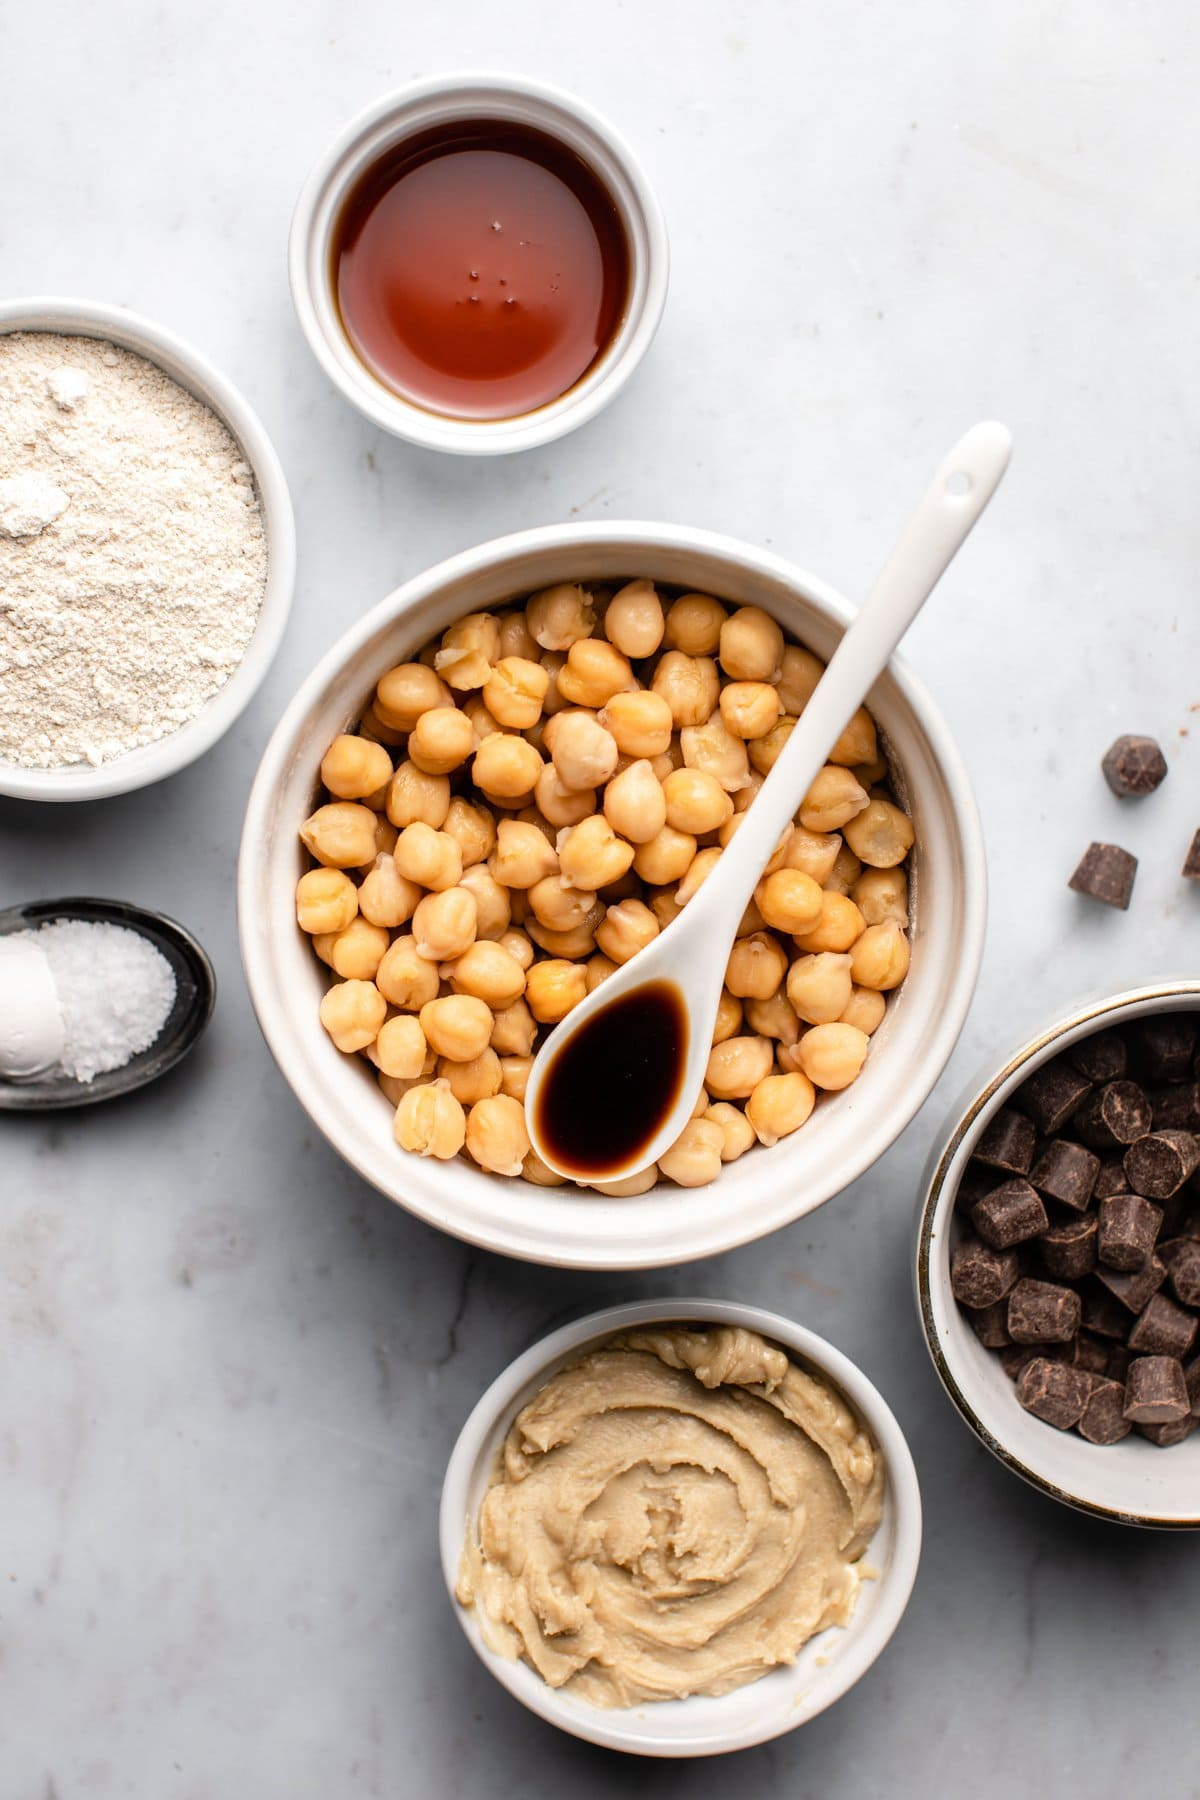 ingredients for chickpea chocolate chip cookies in small bowls on marble background